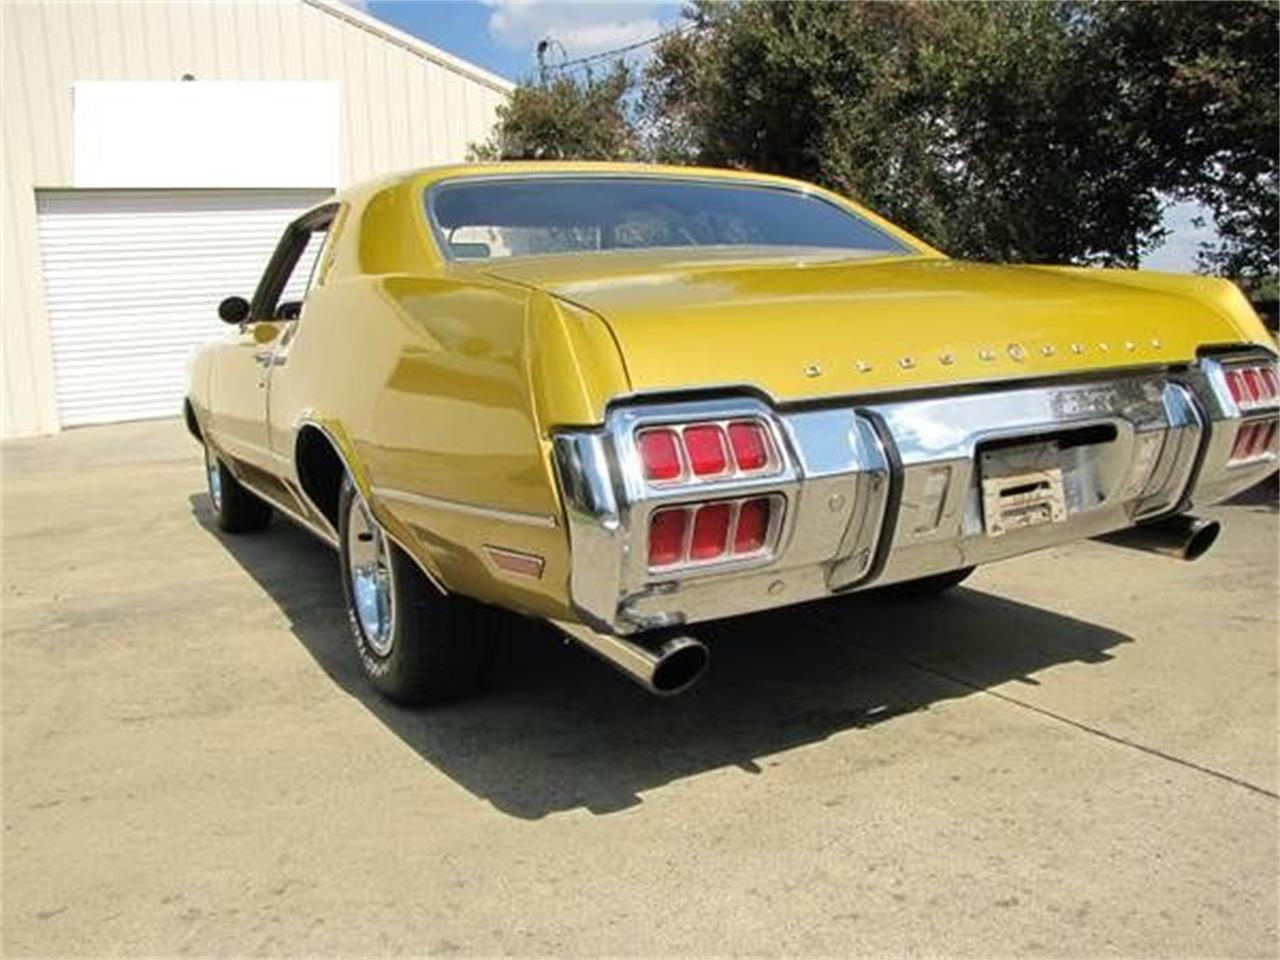 Large Picture of '72 Oldsmobile Cutlass located in Michigan - $21,895.00 - PGSP